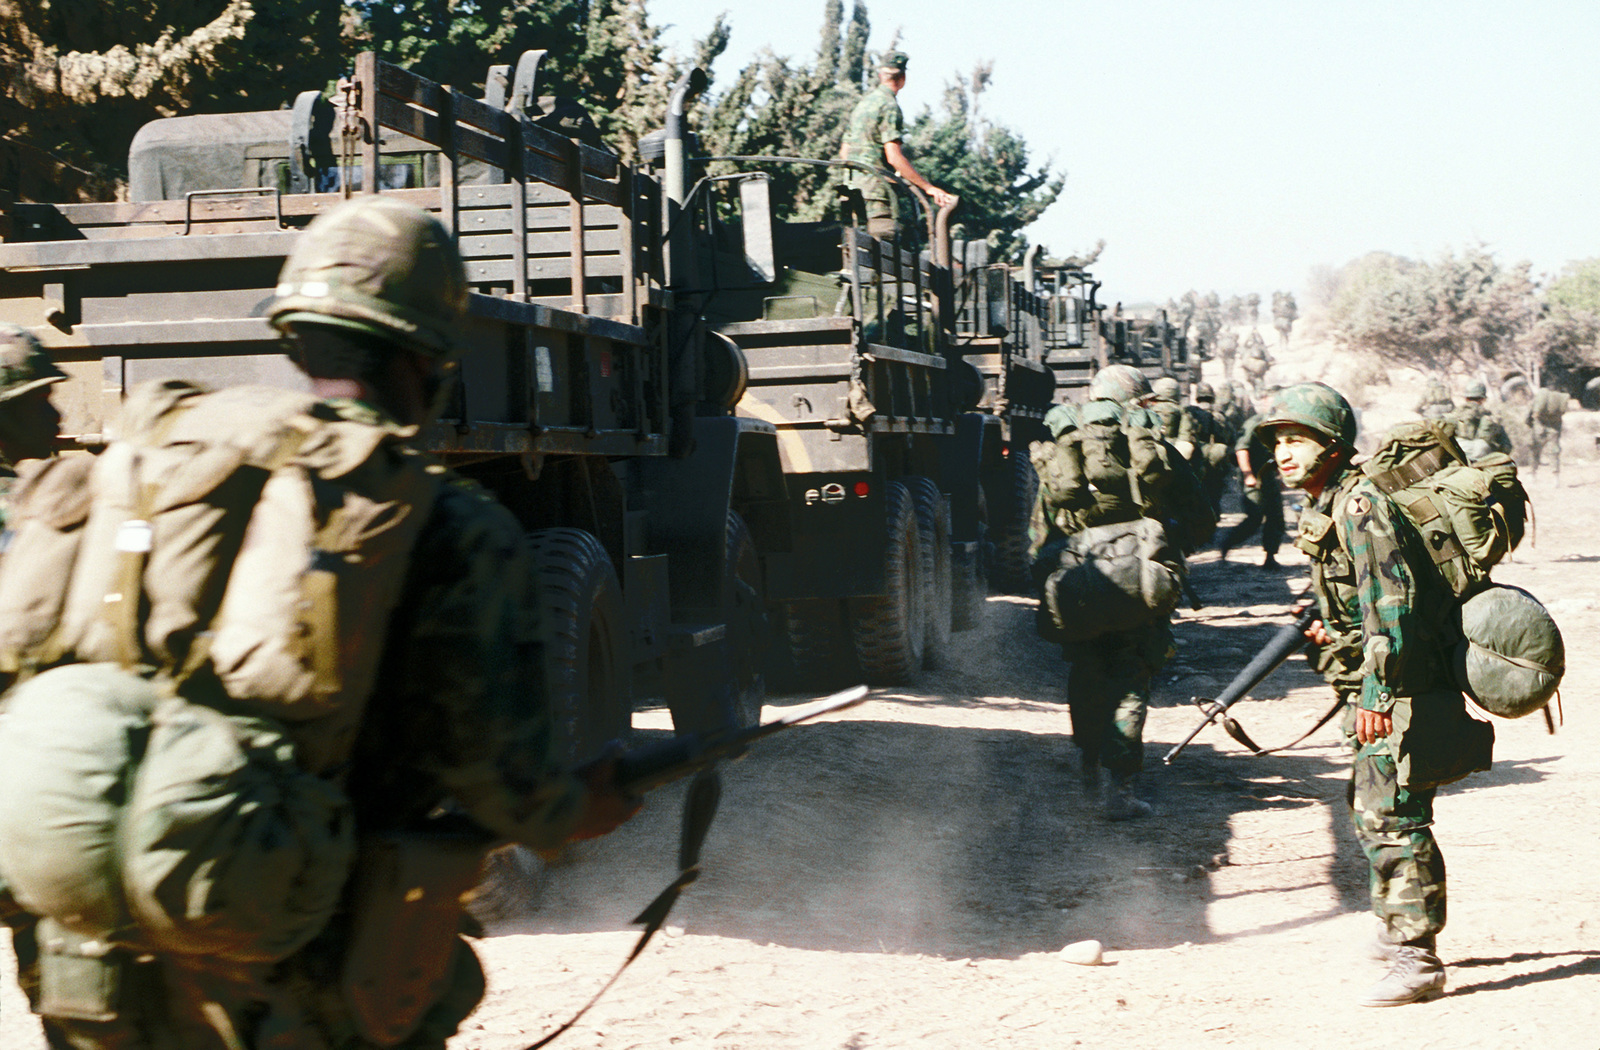 Army personnel from Fort Ord, California, move in formation